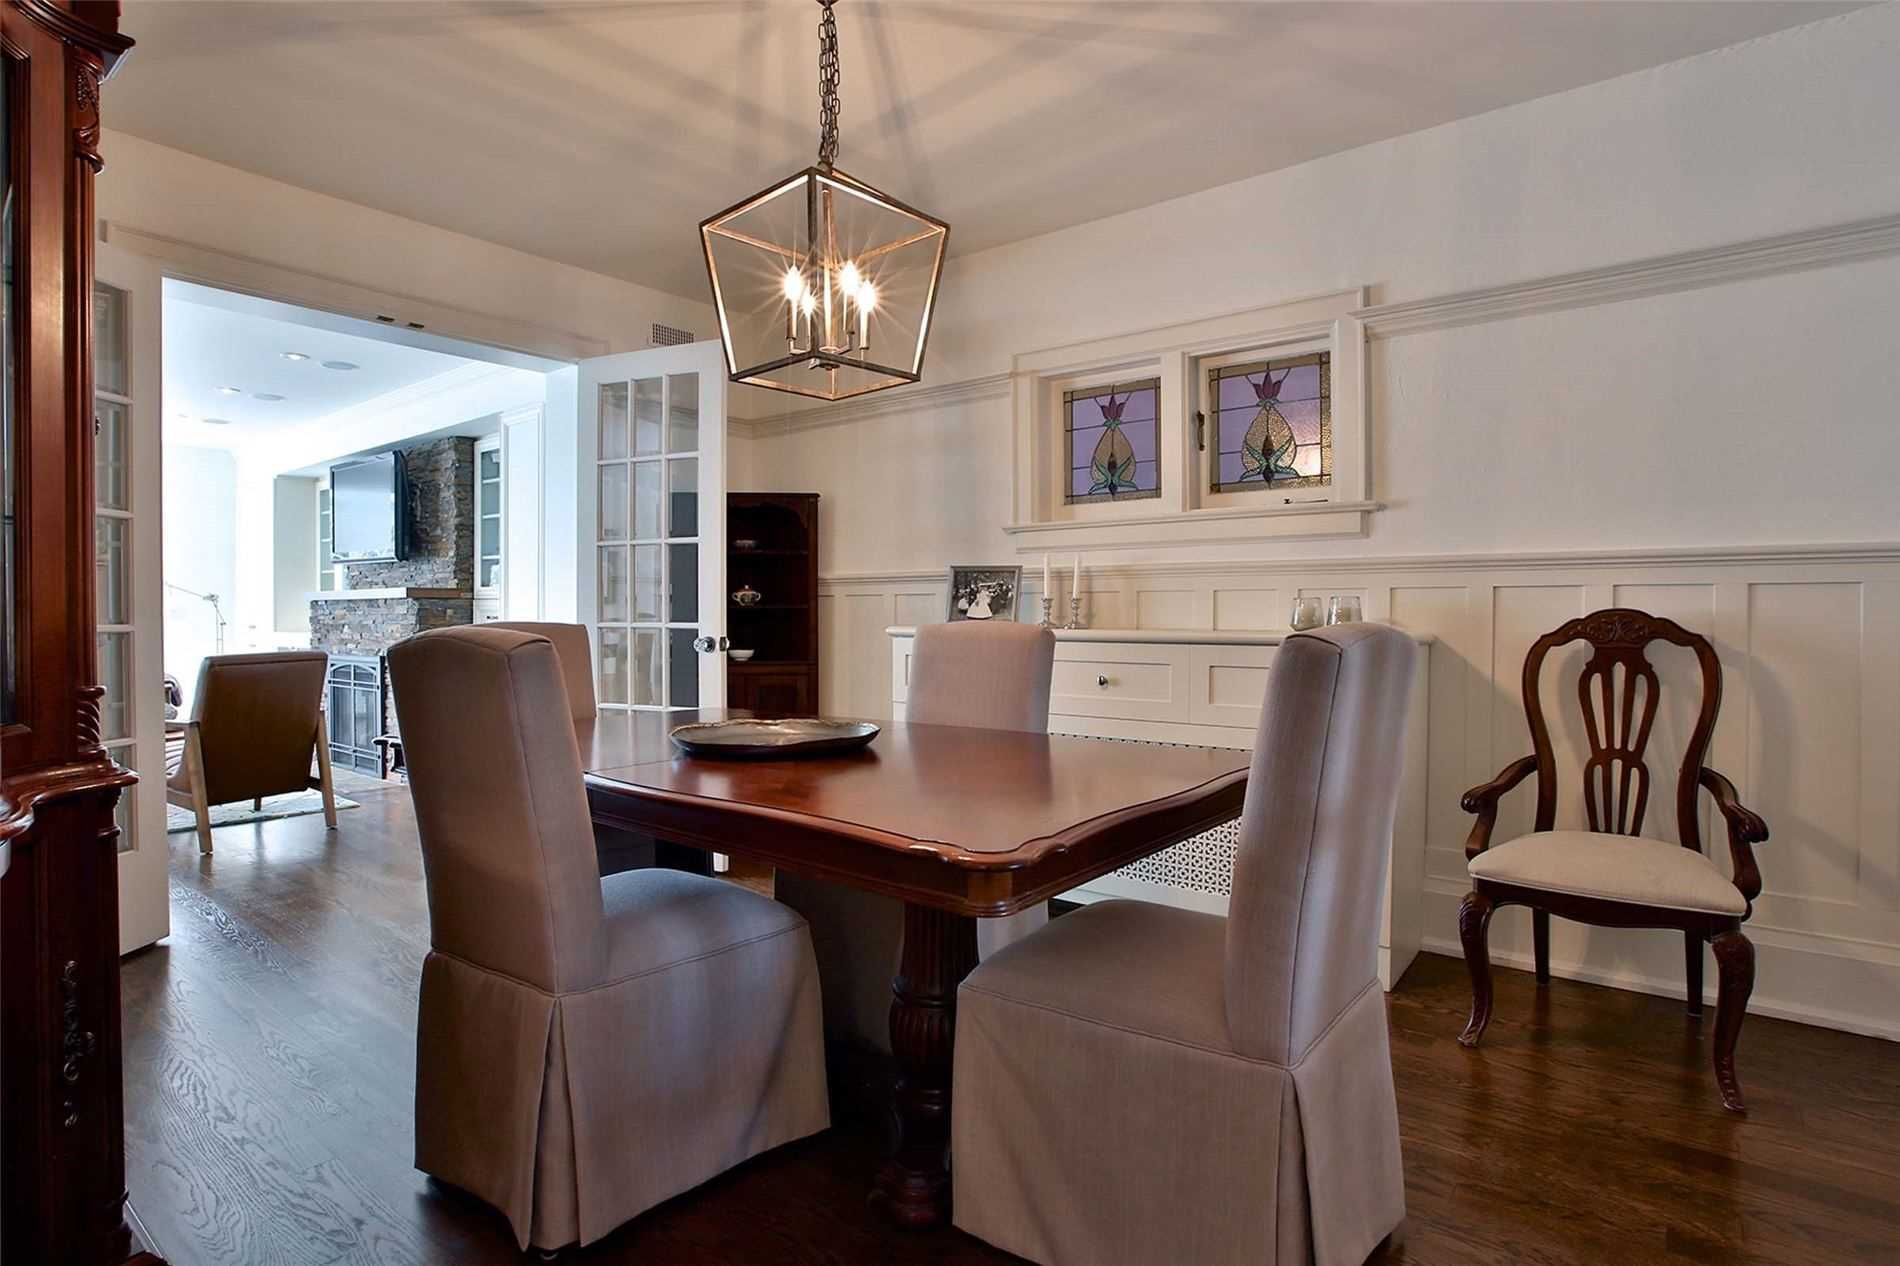 Photo 4: Photos: 181 W Glengrove Avenue in Toronto: Lawrence Park South House (2-Storey) for sale (Toronto C04)  : MLS®# C4633543